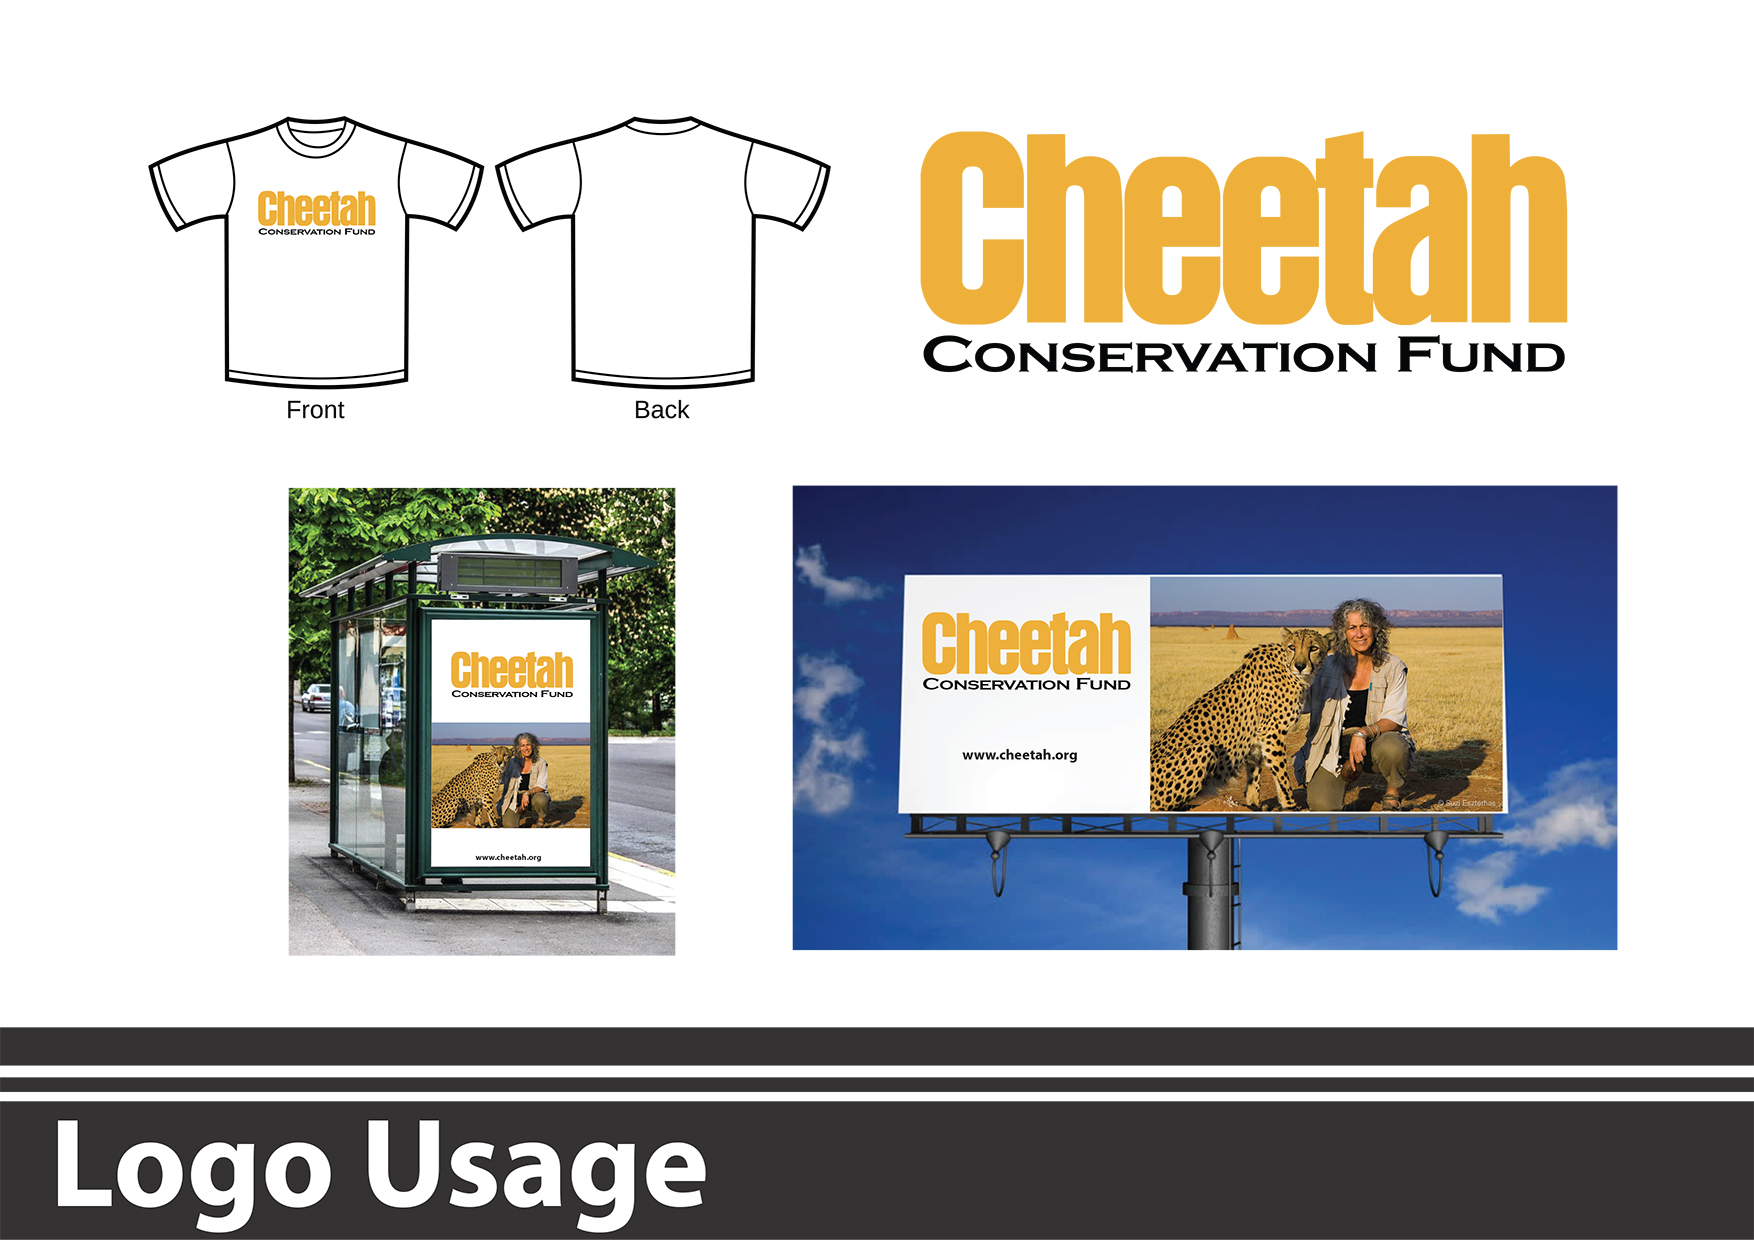 Cheetah Conservation Fund Brand Book (1)-10.jpg